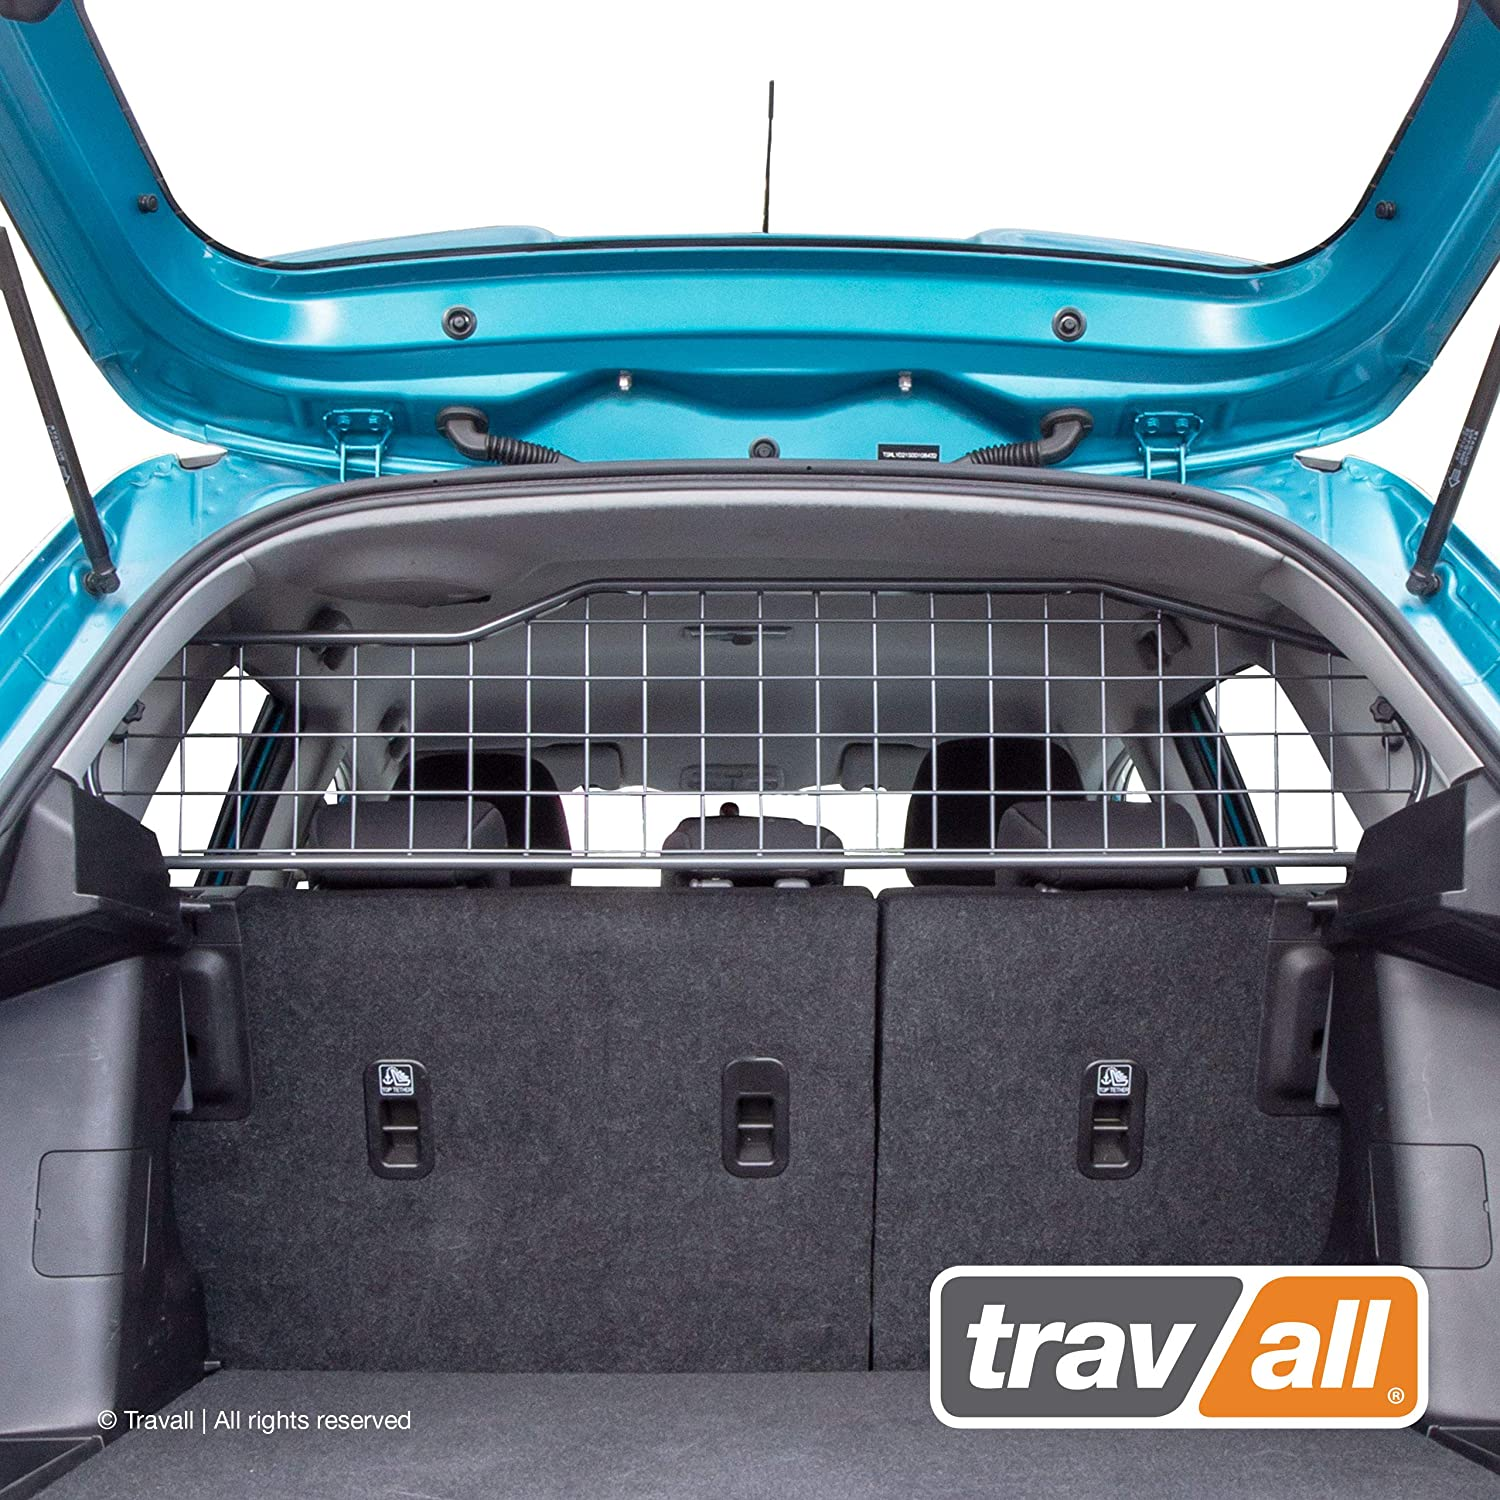 Travall Guard TDG1504 Vehicle-Specific Dog Guard